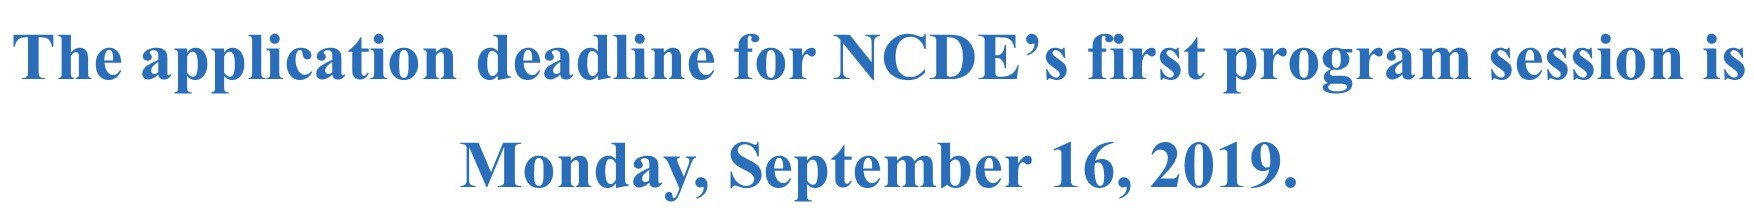 Application deadline for NCDE's program session is 9/16